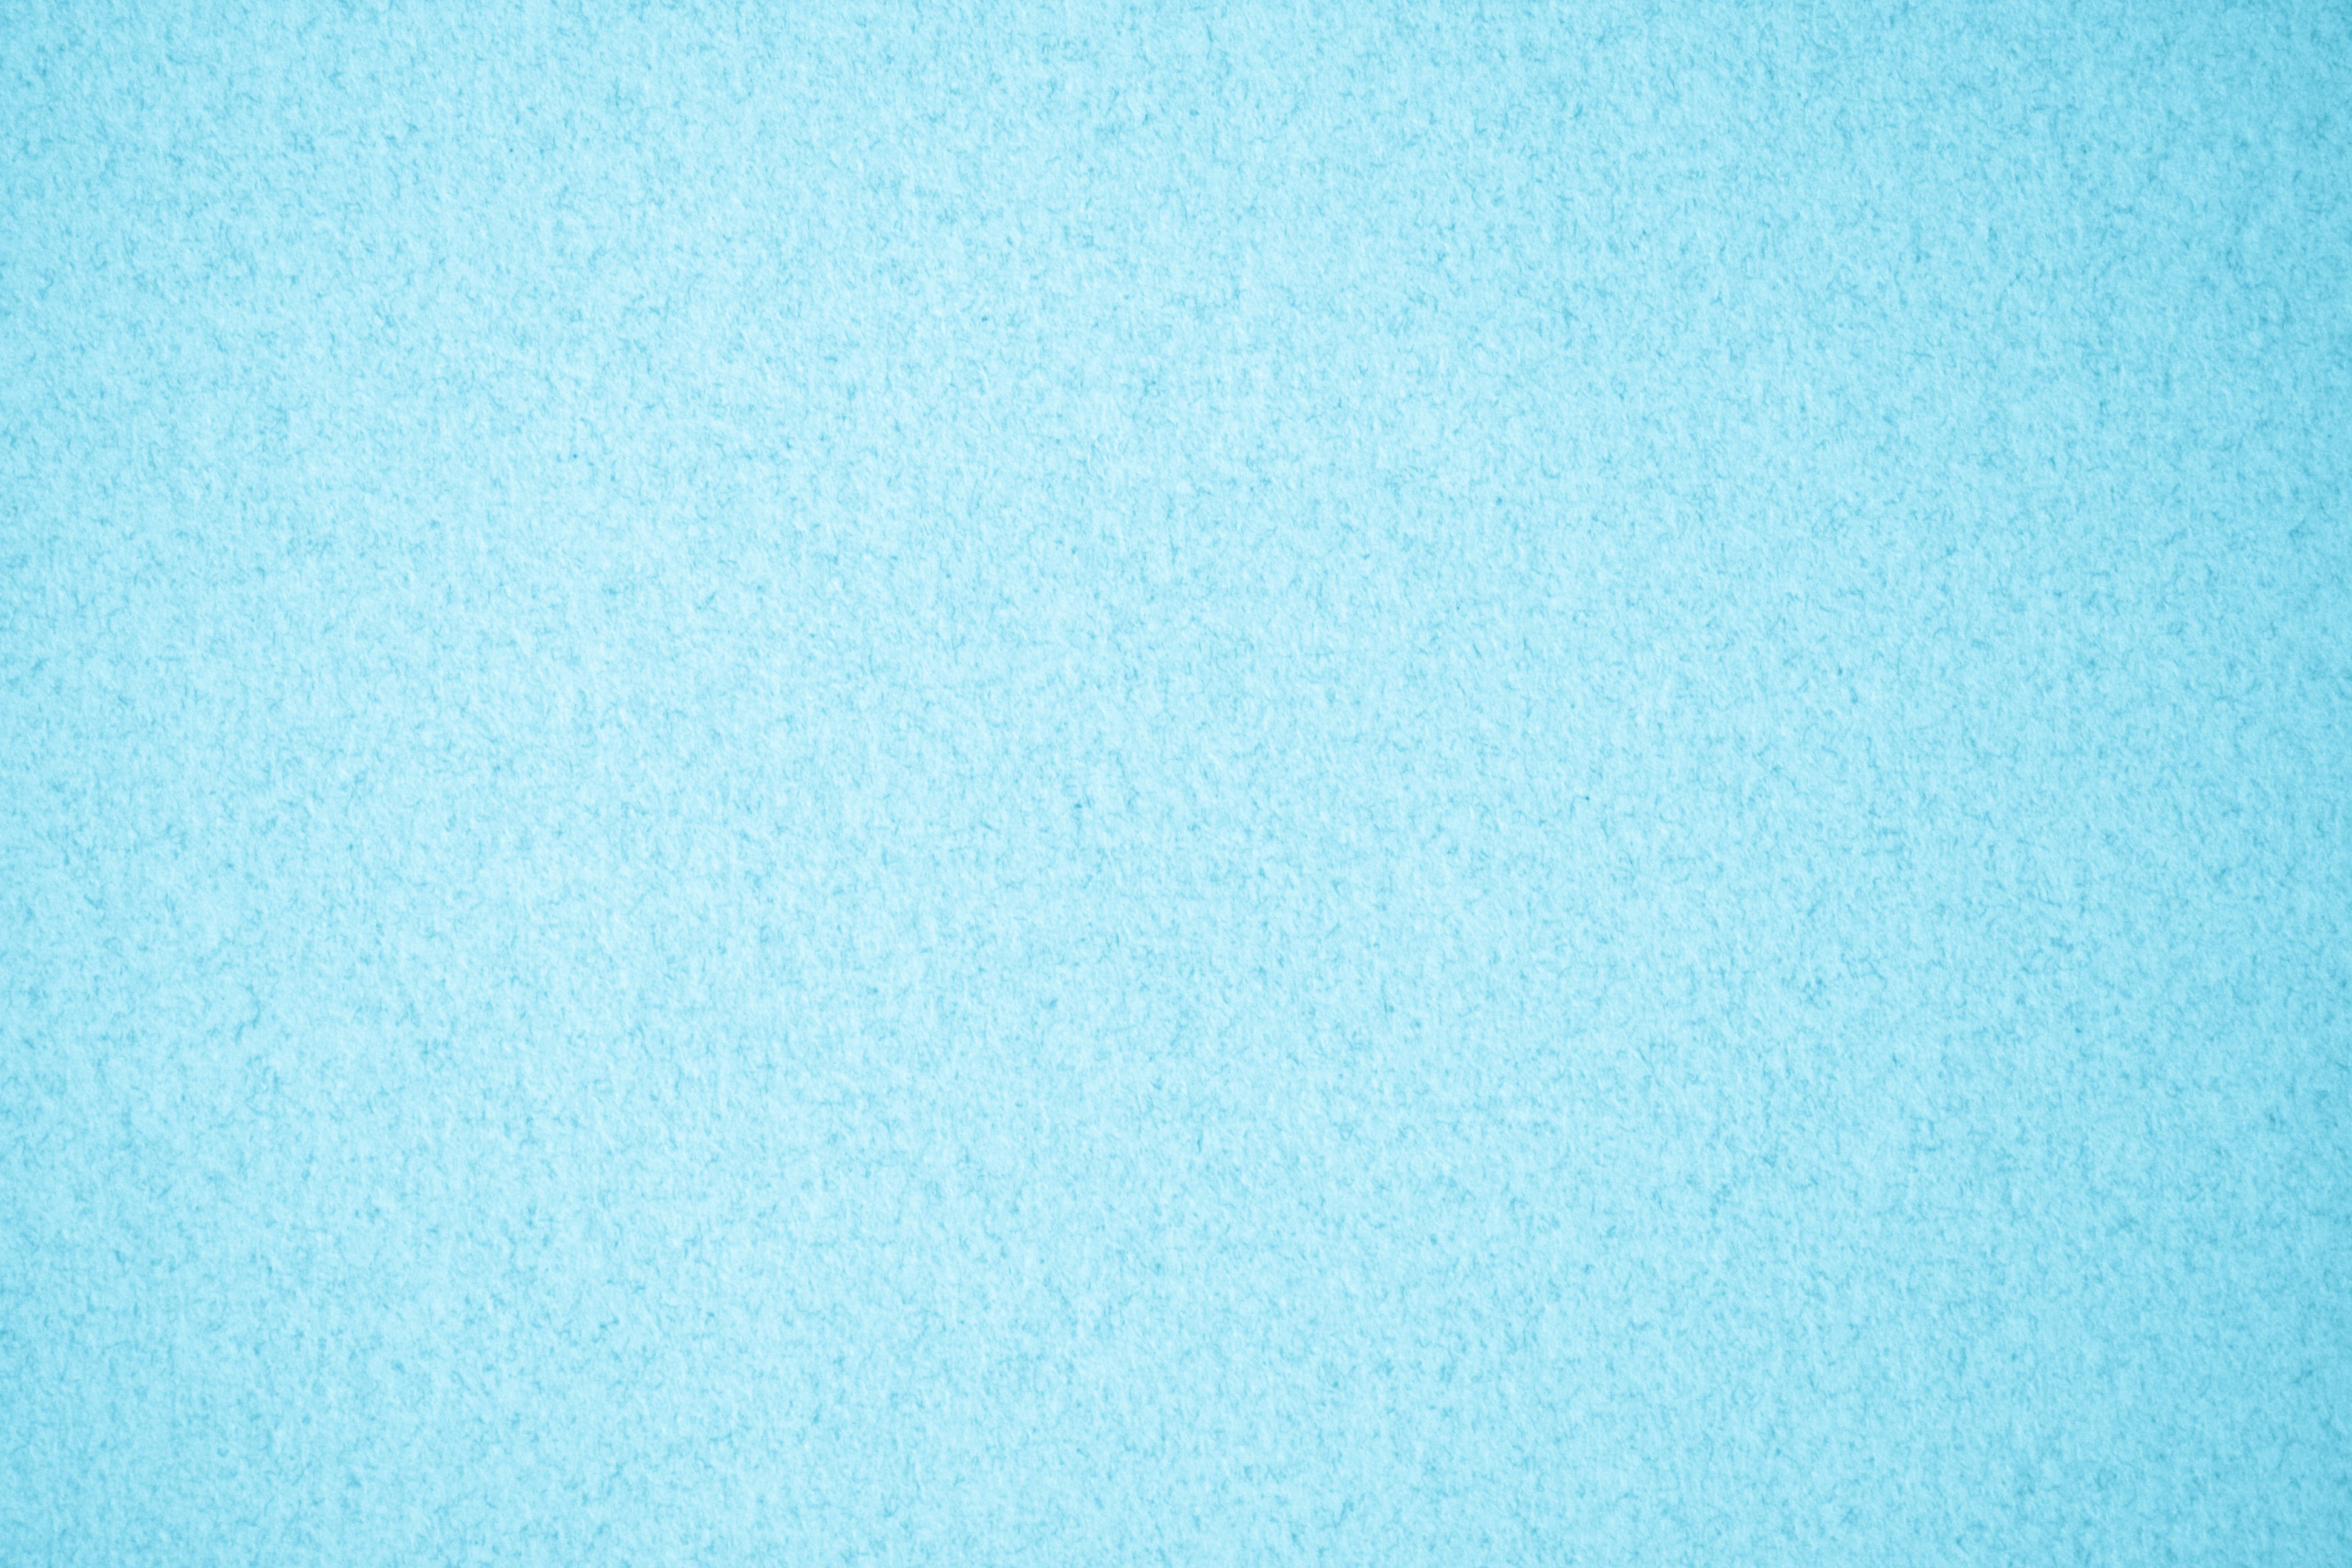 Baby Blue Speckled Paper Texture Picture Photograph Photos 3888x2592